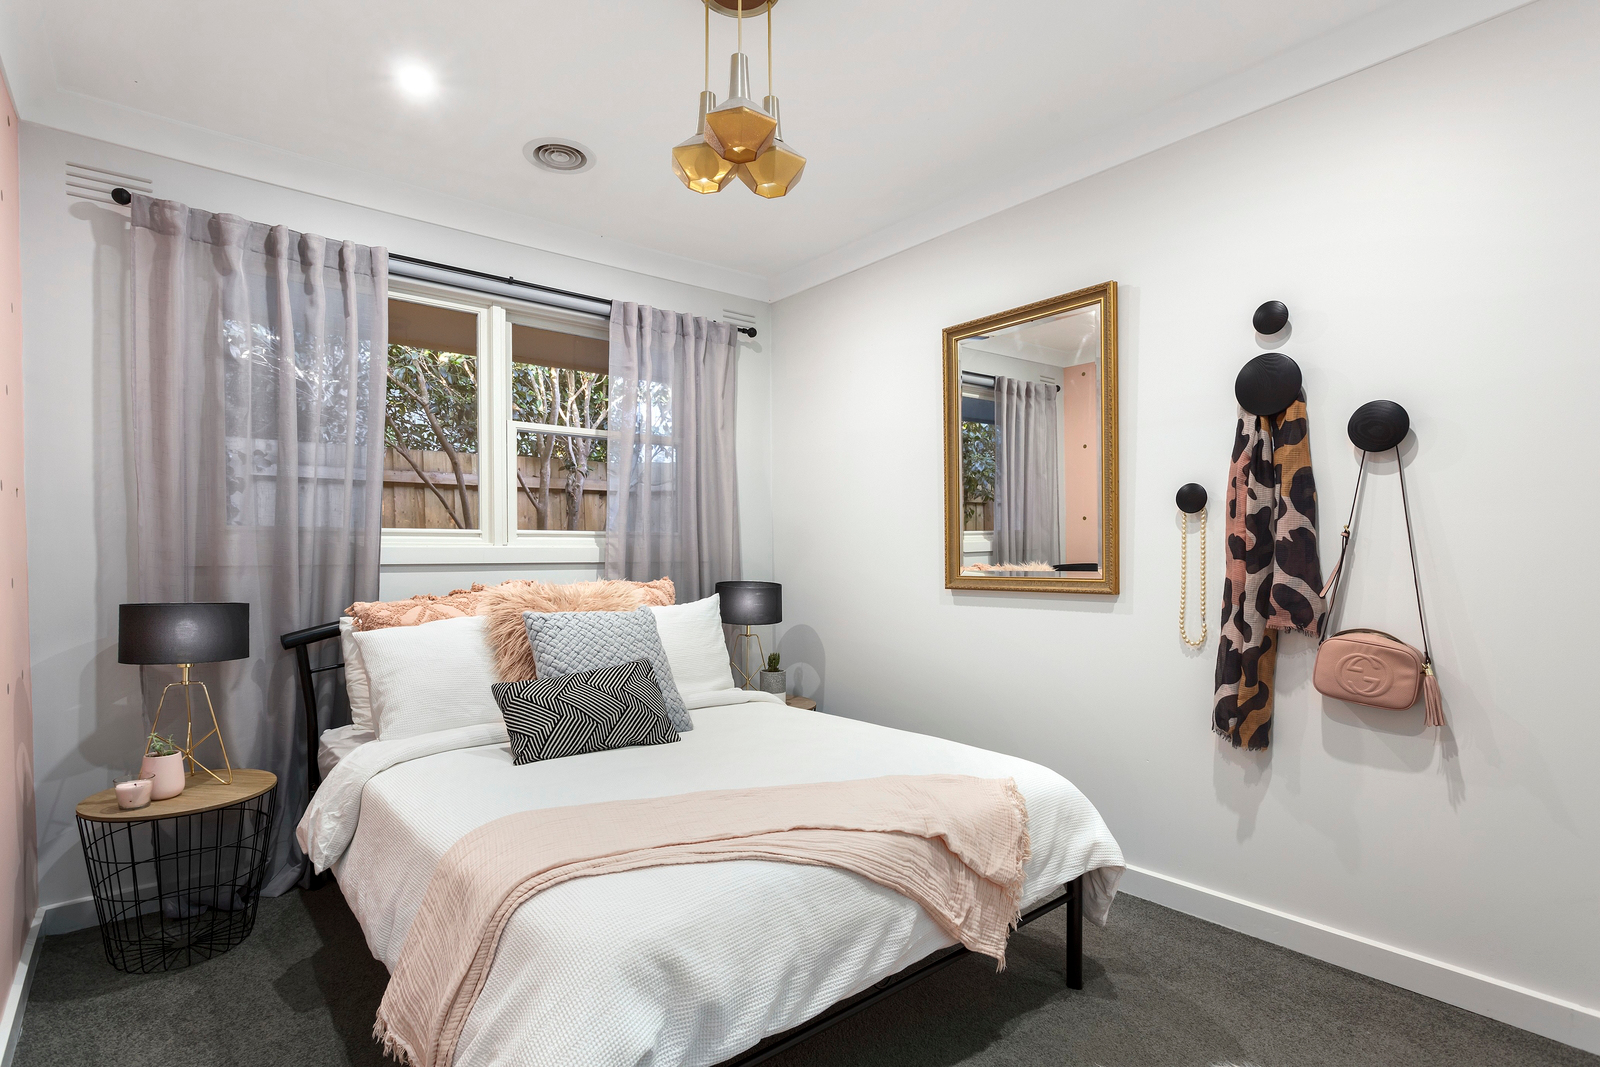 4 Presidents Avenue, Ocean Grove 3226 - Image 10